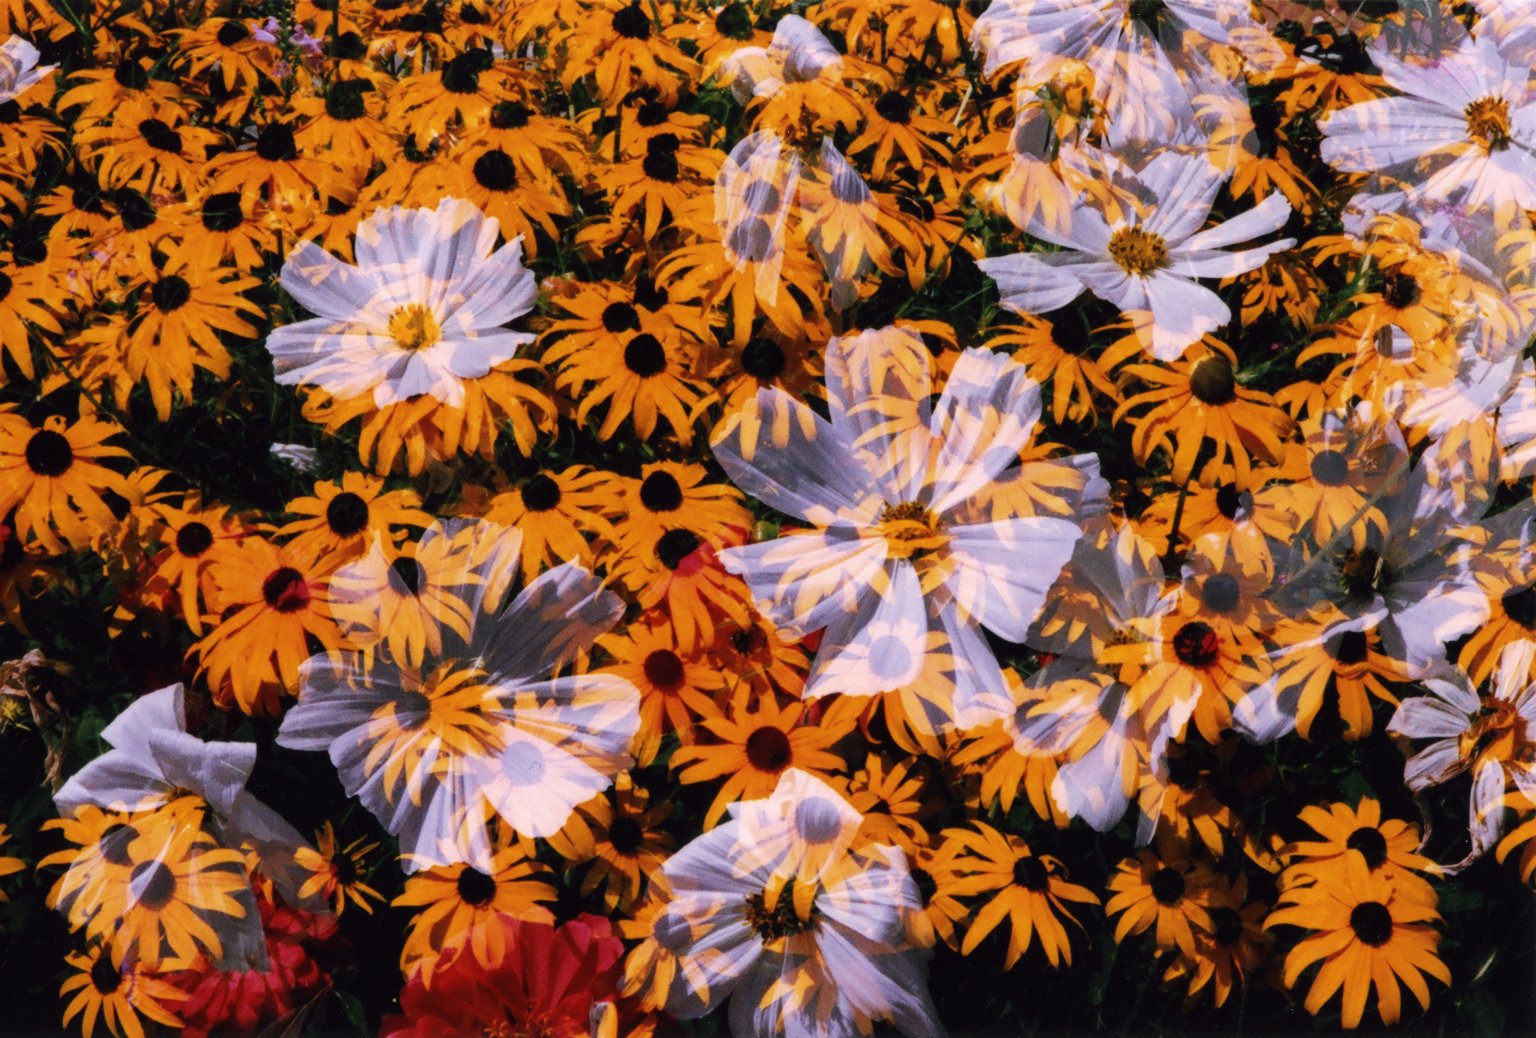 Double Exposure- White flowers over yellow flowers